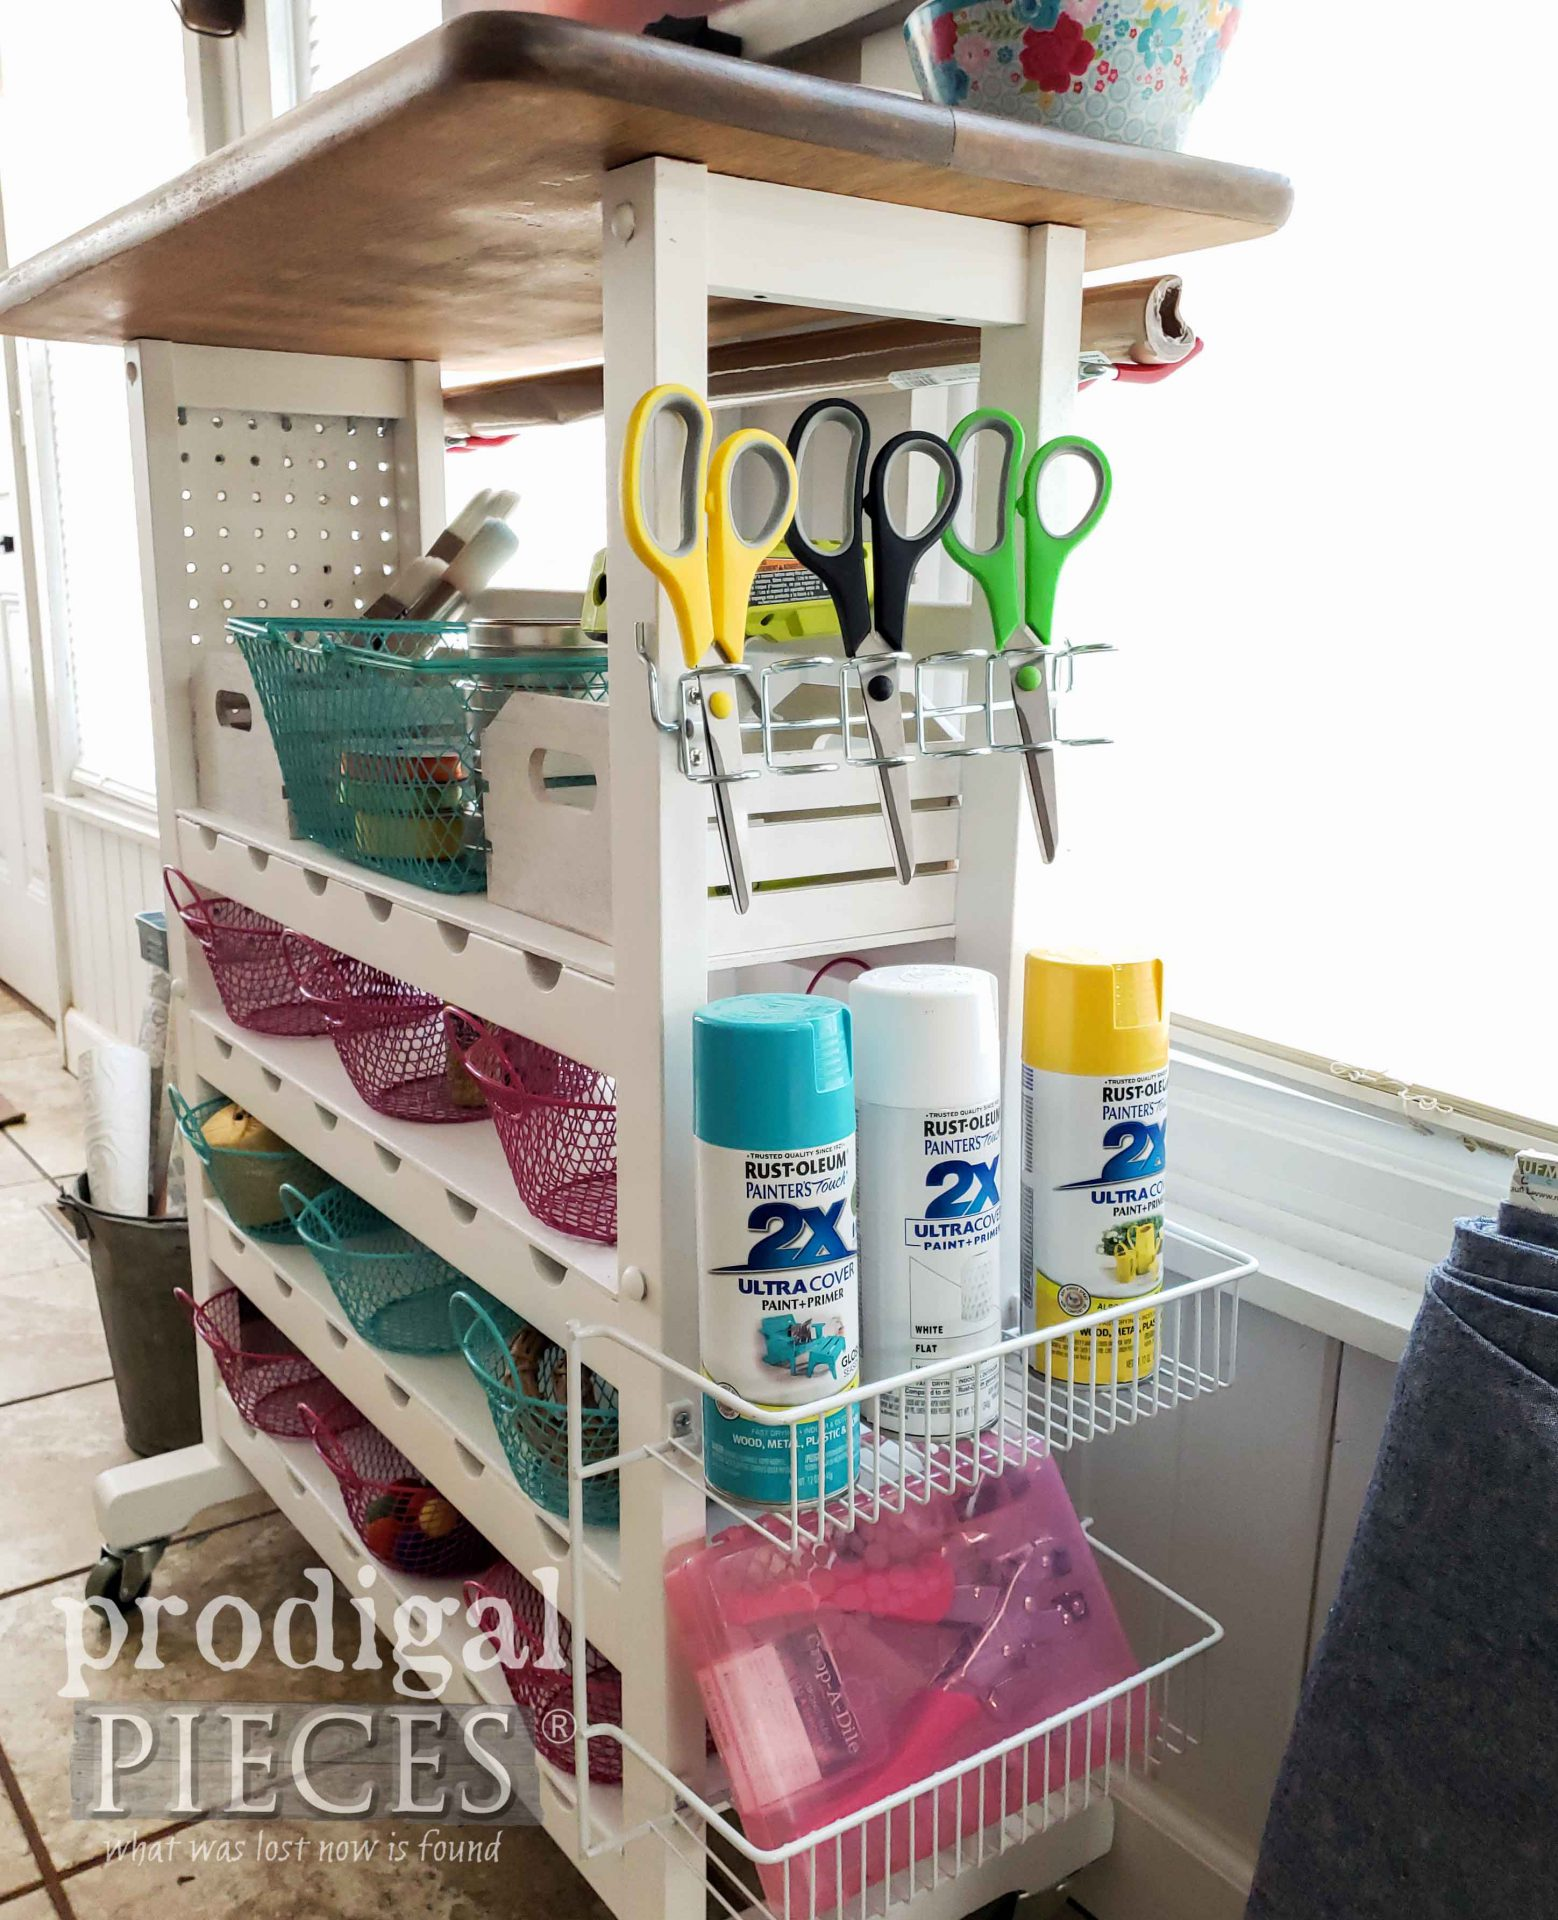 DIY Craft Store on Upcycled Cart by Larissa of Prodigal Pieces | prodigalpieces.com #prodigalpieces #home #crafts #home #homedecor